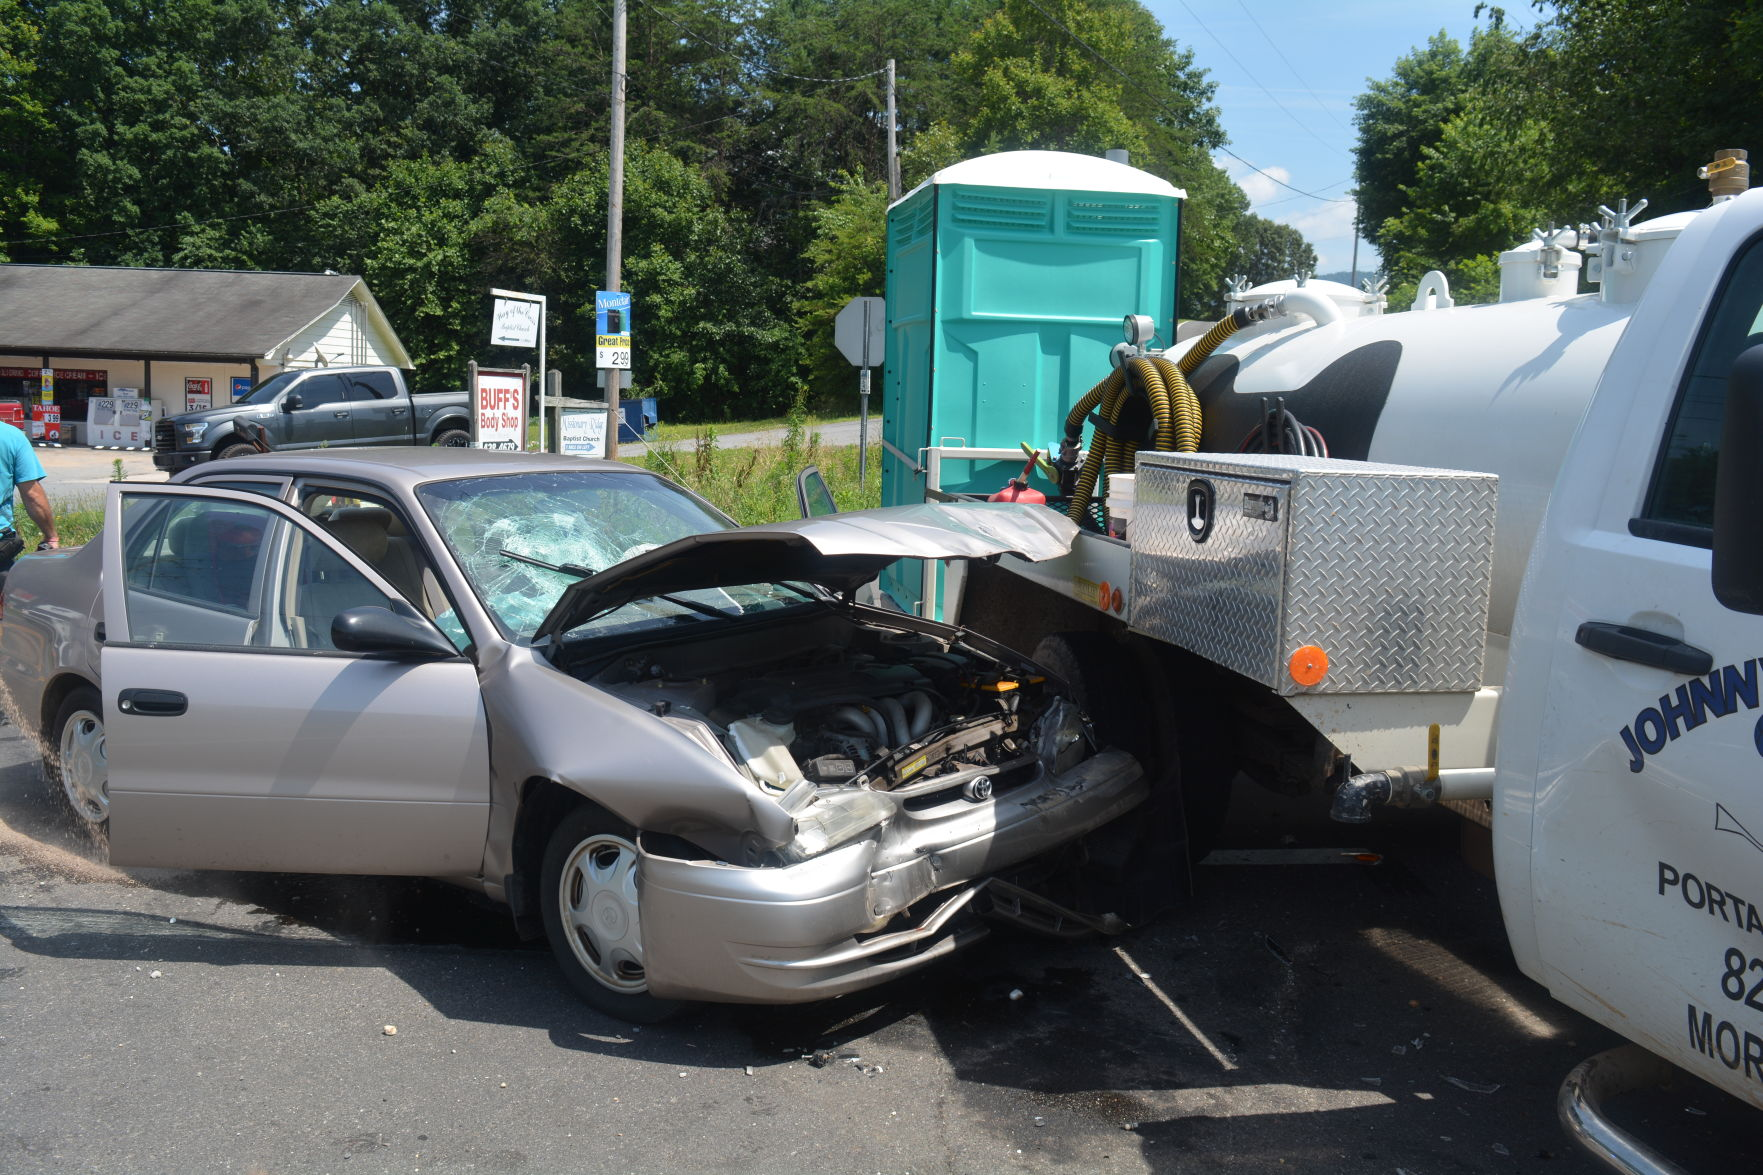 porta potty wreck 1 injured 1 charged